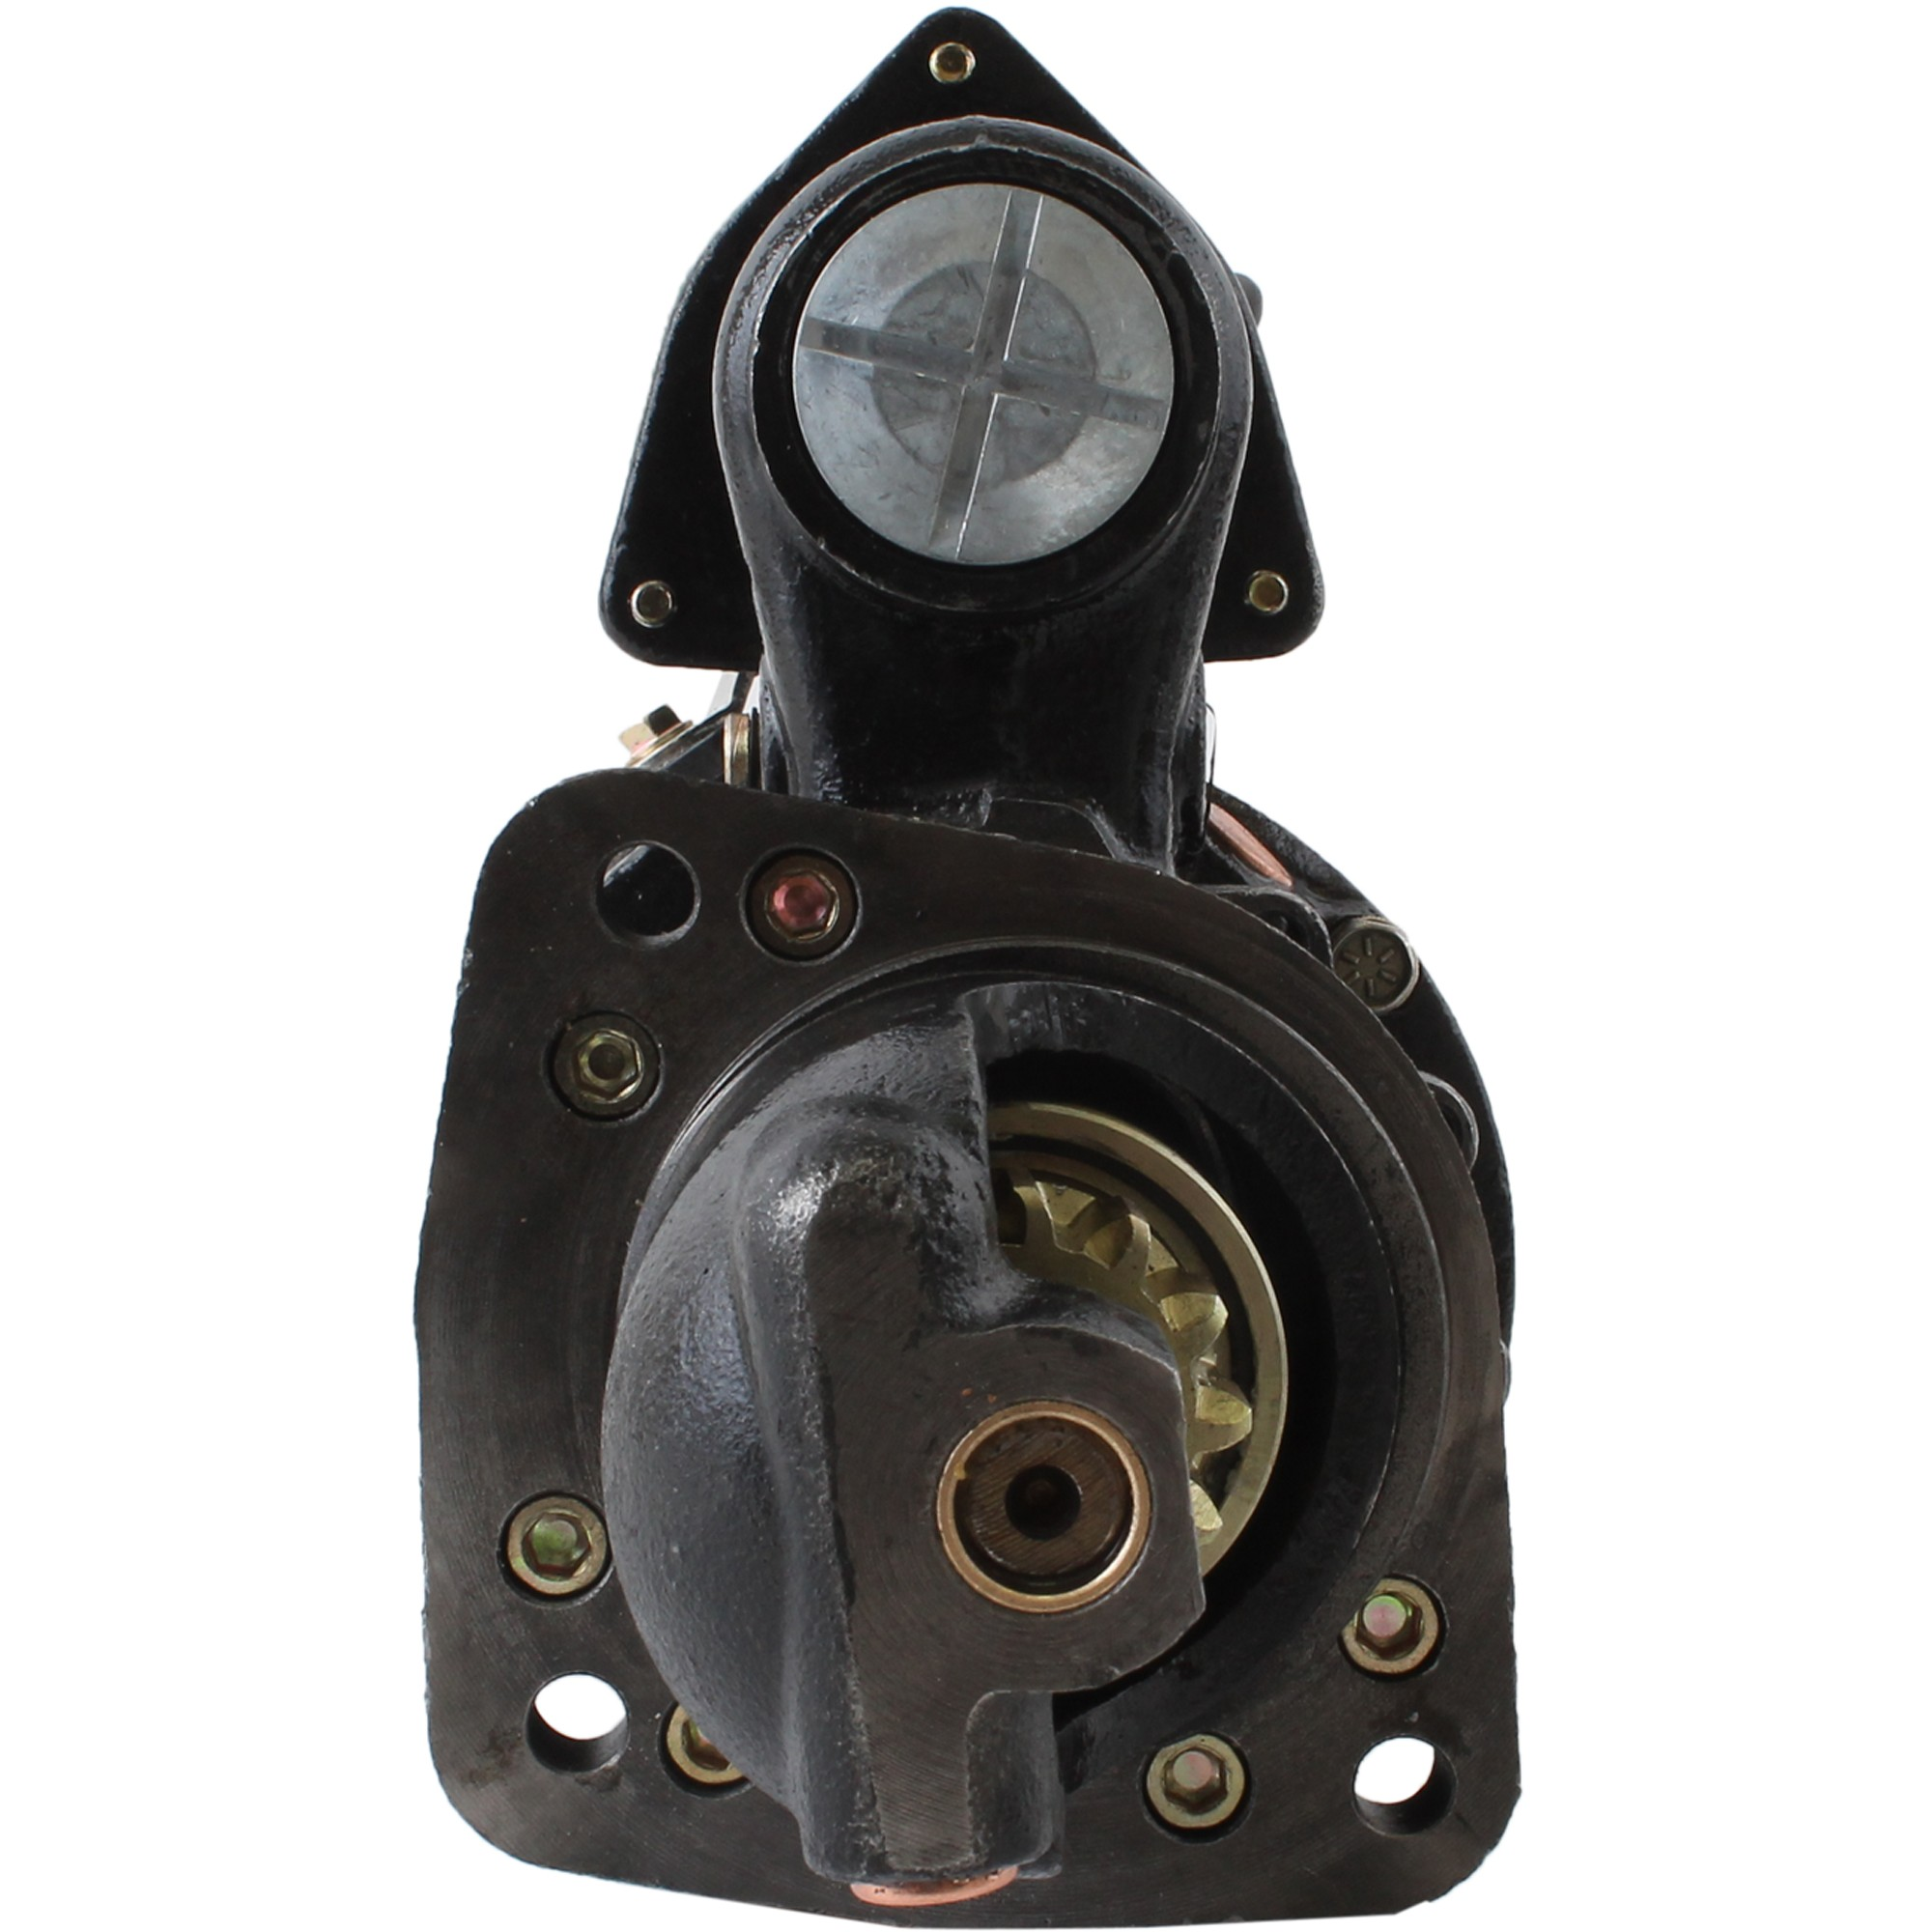 NEW STARTER for FORD F650 SUPER DUTY TRUCK w//Cat 3126 Engine 1998-2003